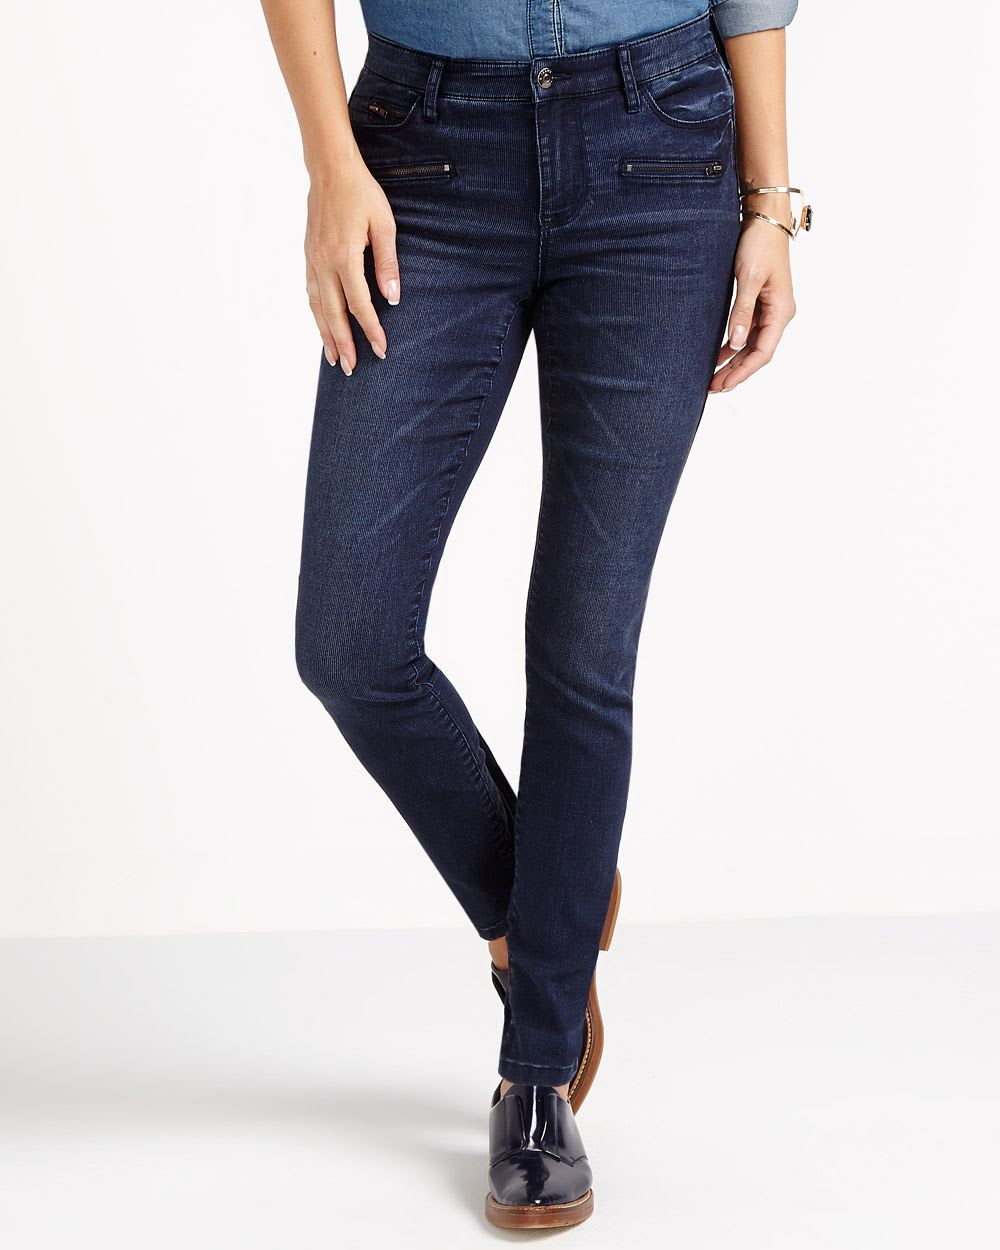 NYDJ ami skinny jeans in petite flatter every inch of HEM Women's High-Rise Mom Jeans Stretch Skinny Fit Ankle. by HEM. $ - $ $ 29 $ 32 98 Prime. FREE Shipping on eligible orders. Some sizes are Prime eligible. 5 out of 5 stars 4. Product Description be a staple in your closet.